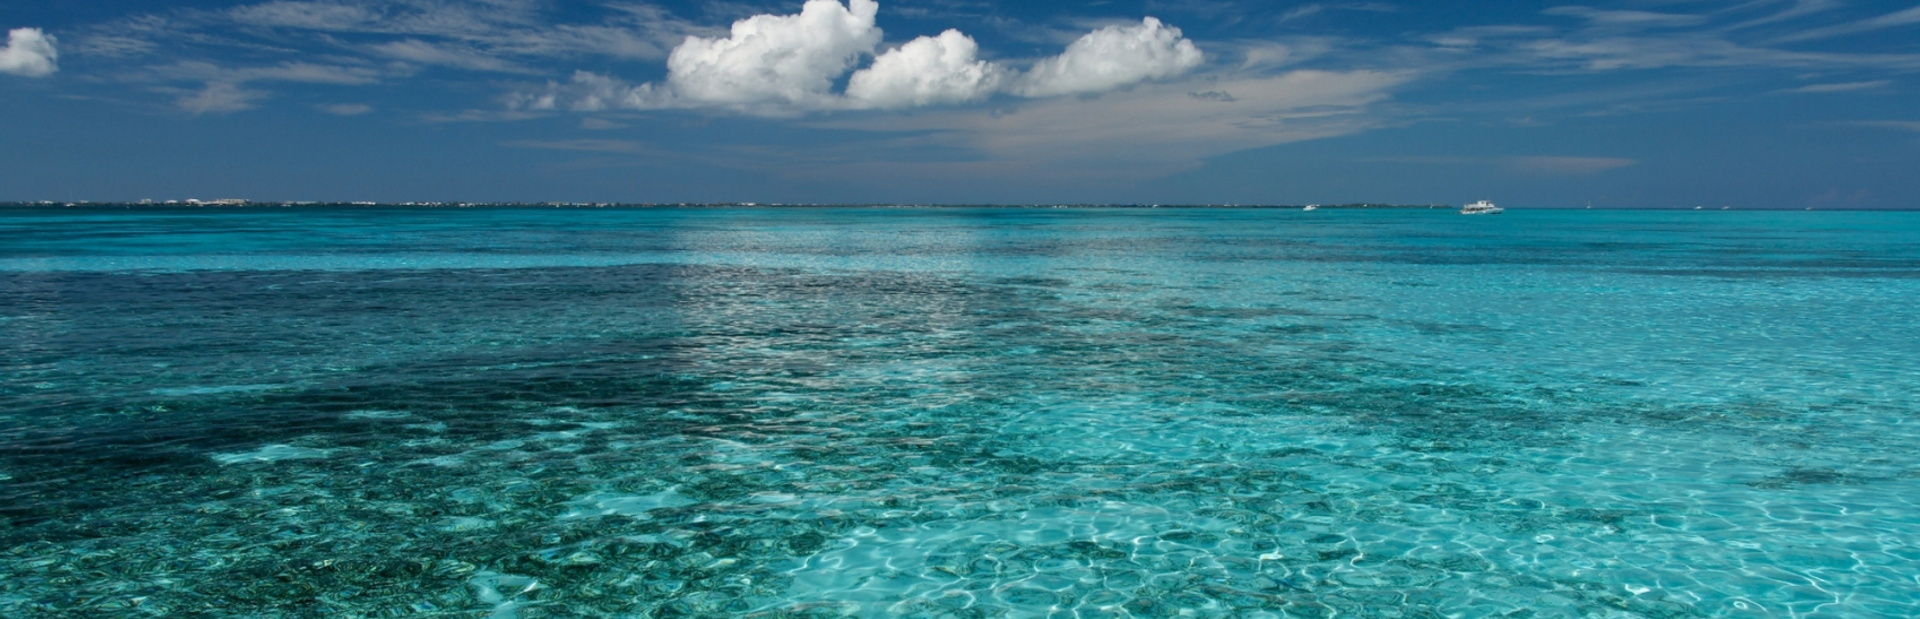 Crystal clear blue water in the sea